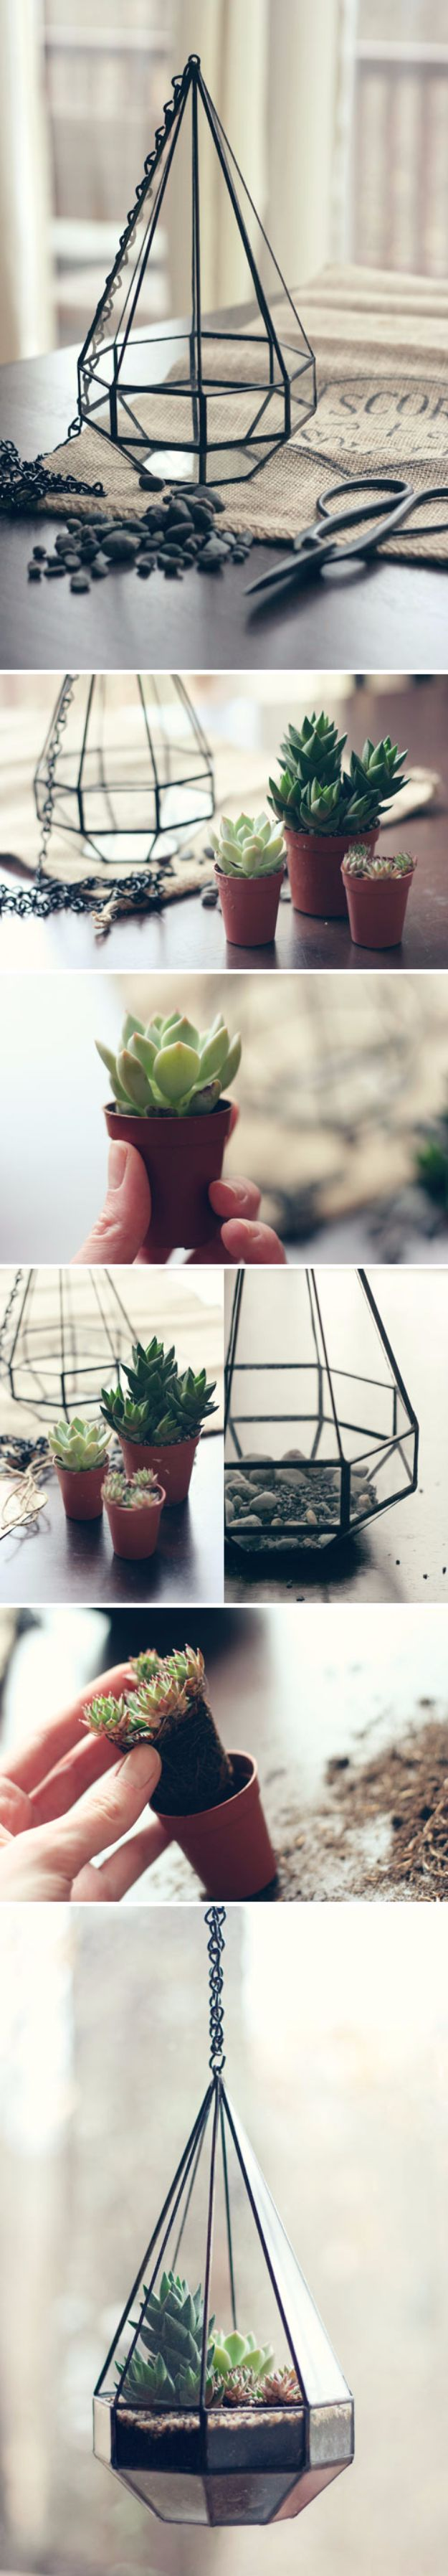 DIY Terrarium Ideas - Hanging Glass Terrarium - Cool Terrariums and Crafts With Mason Jars, Succulents, Wood, Geometric Designs and Reptile, Acquarium - Easy DIY Terrariums for Adults and Kids To Make at Home